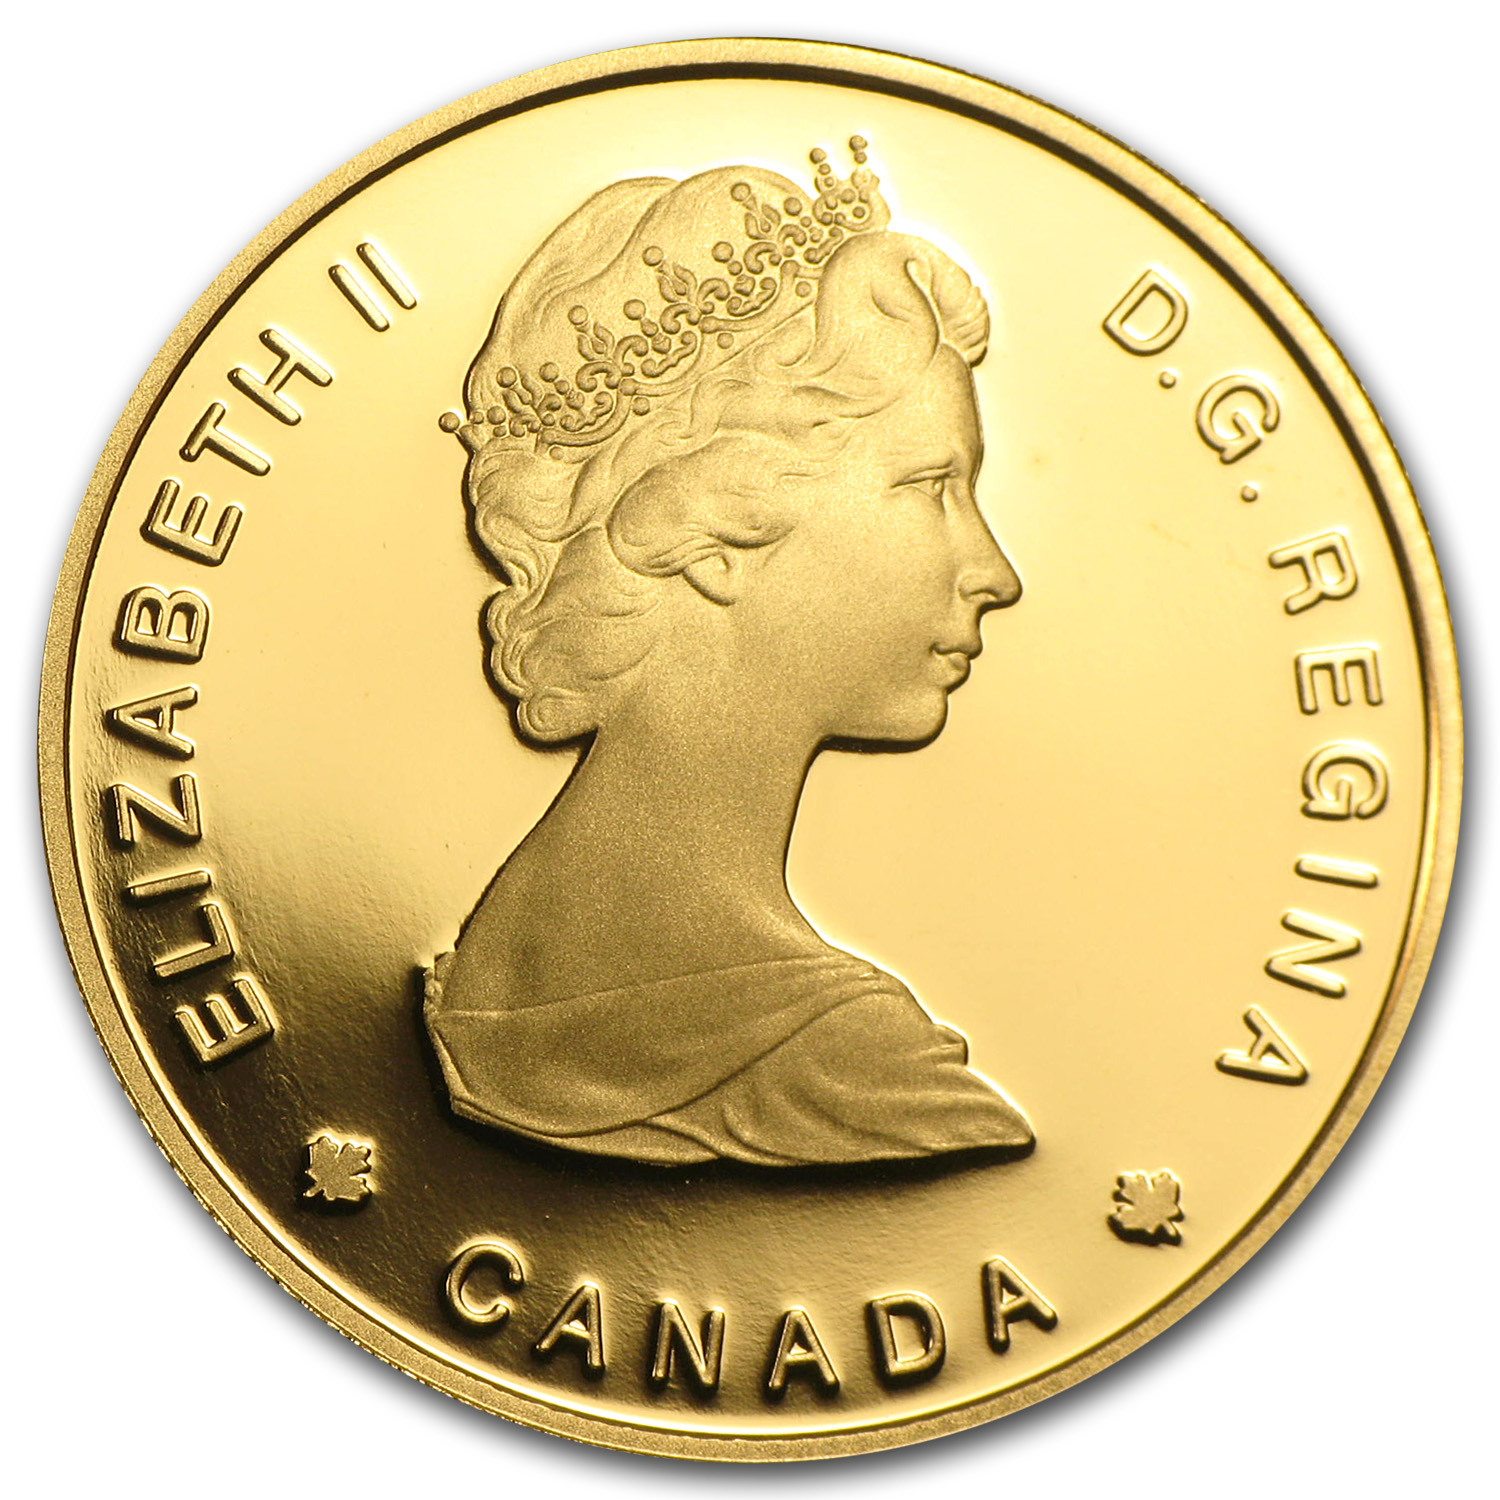 1984 Canada 1/2 oz Proof Gold $100 Jacques Cartier